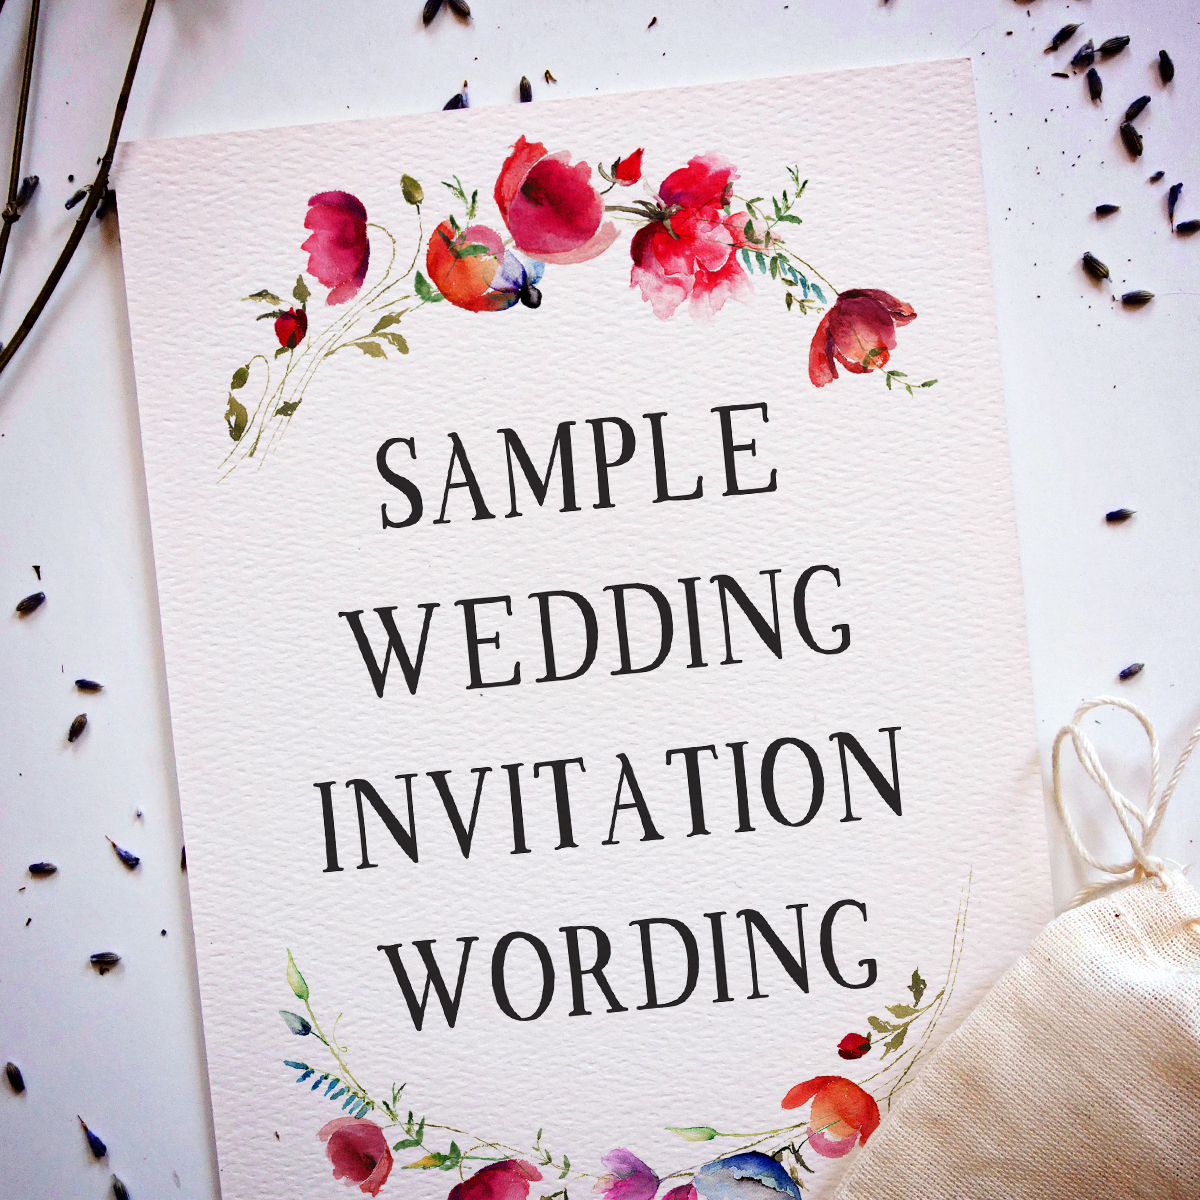 15 Wedding Invitation Wording Samples: From Traditional to Fun - A ...